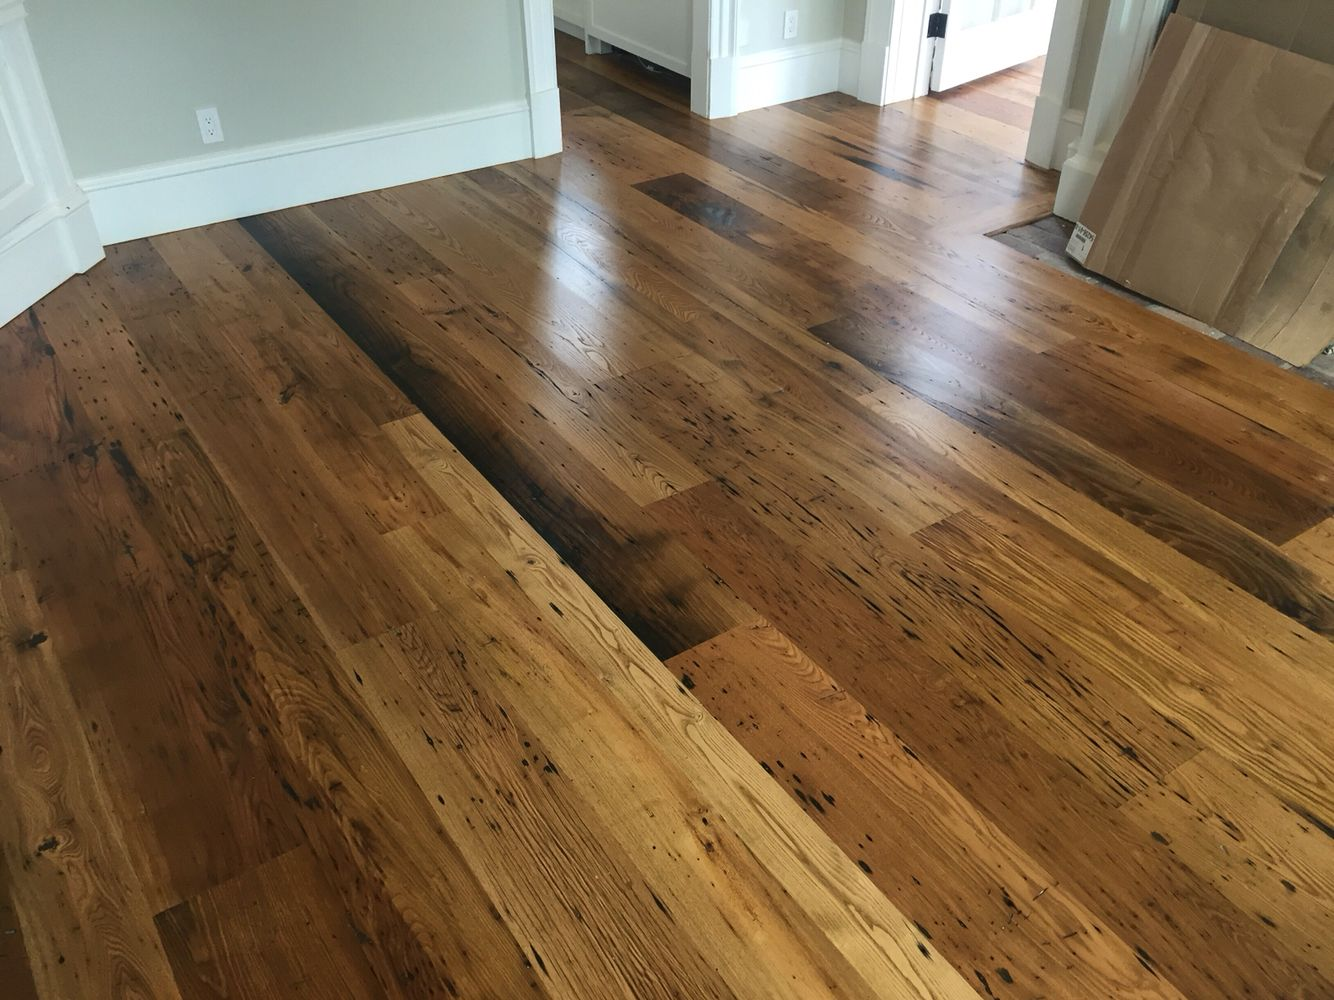 amazing chestnut hardwood flooring living room | Locally milled wide plank reclaimed chestnut flooring ...